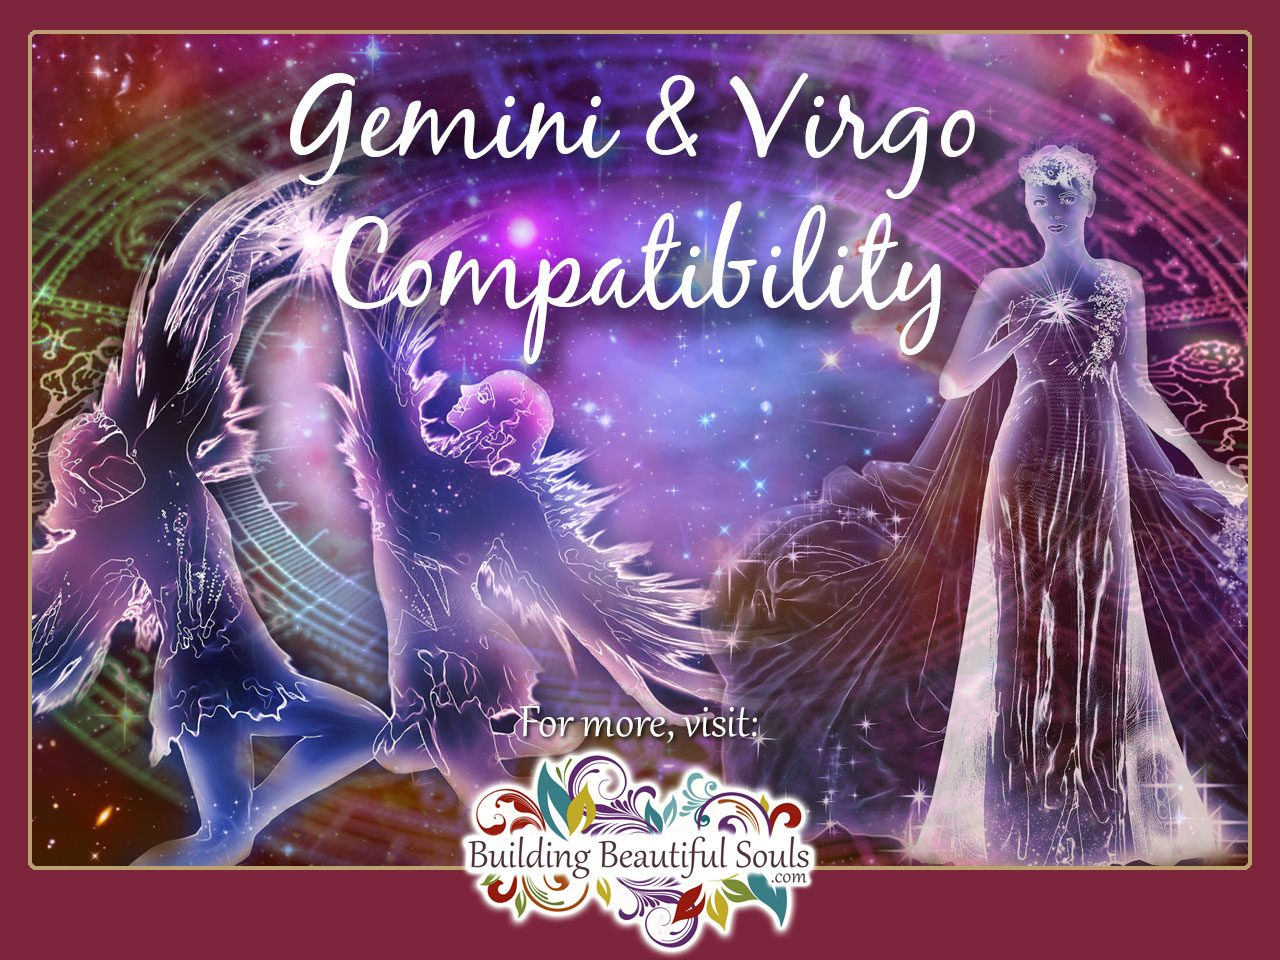 Gemini and Virgo 1280x960